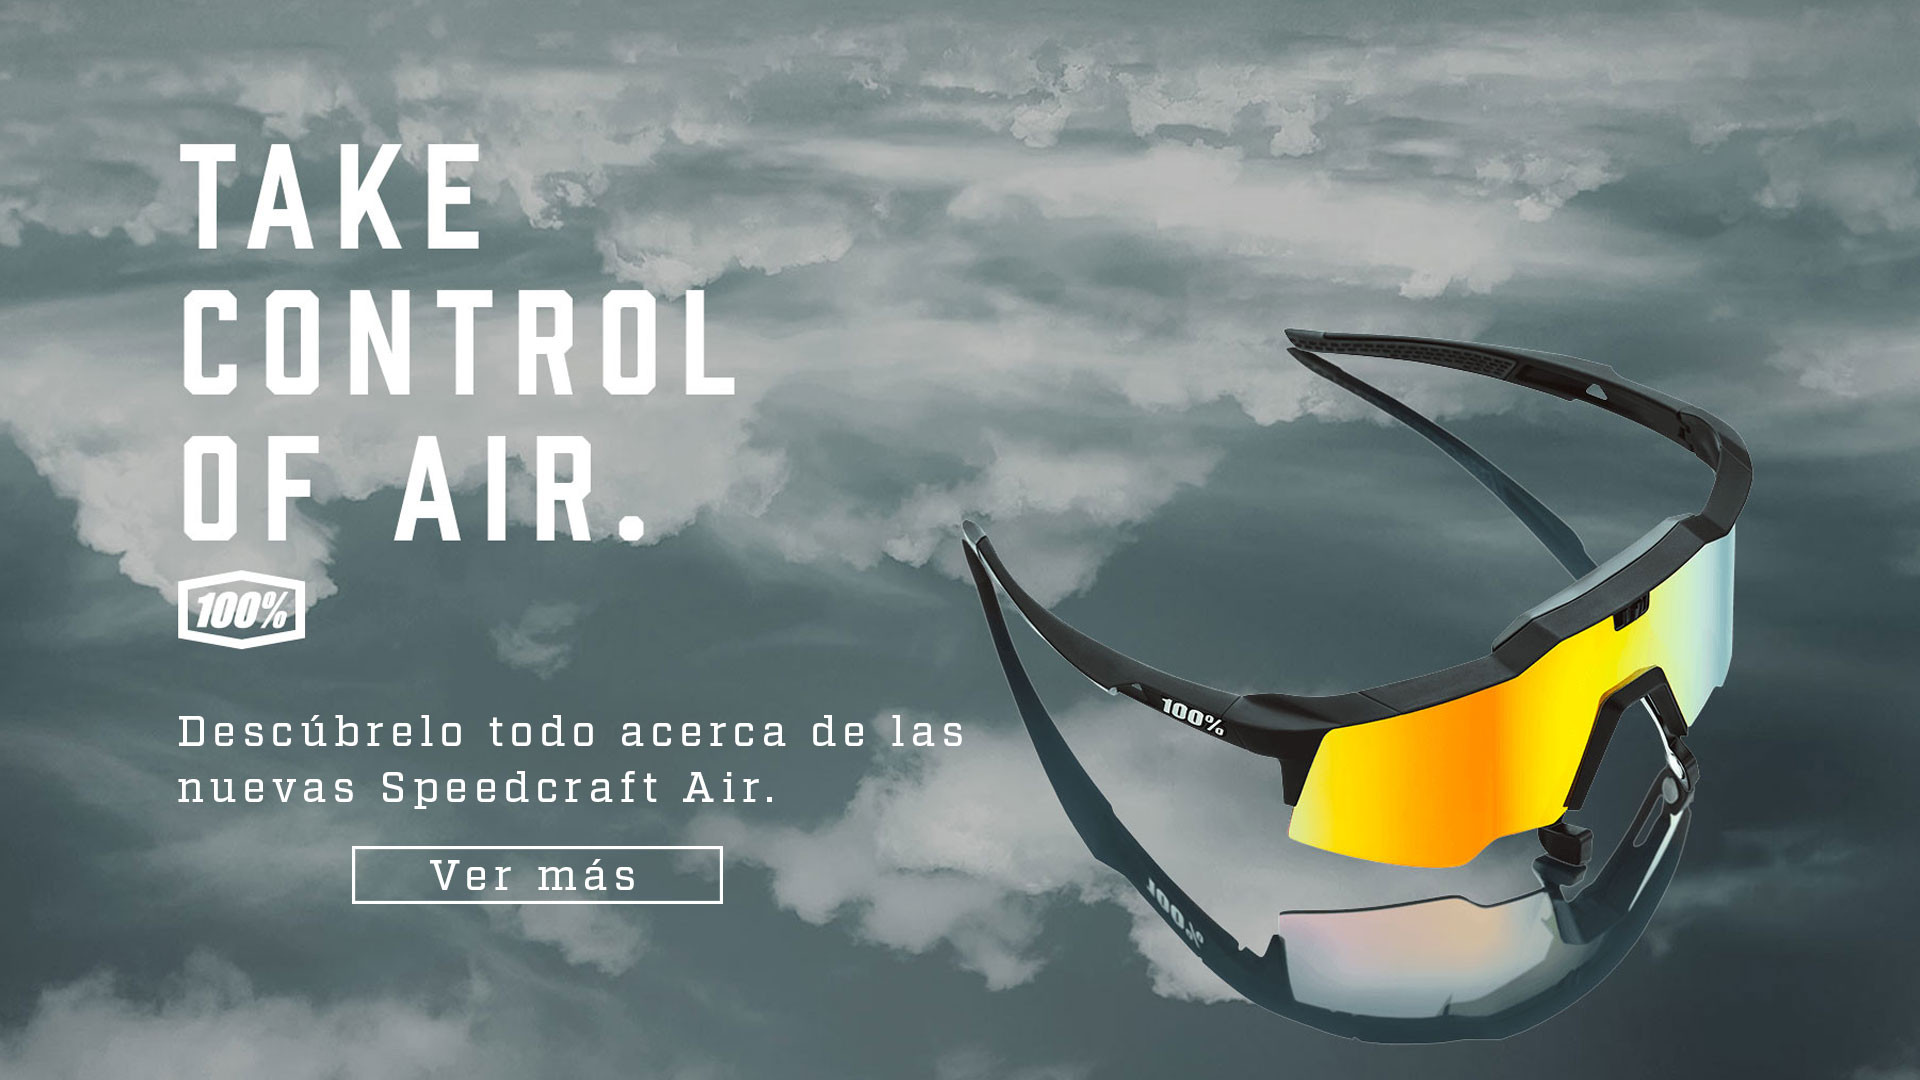 Take Control of Air